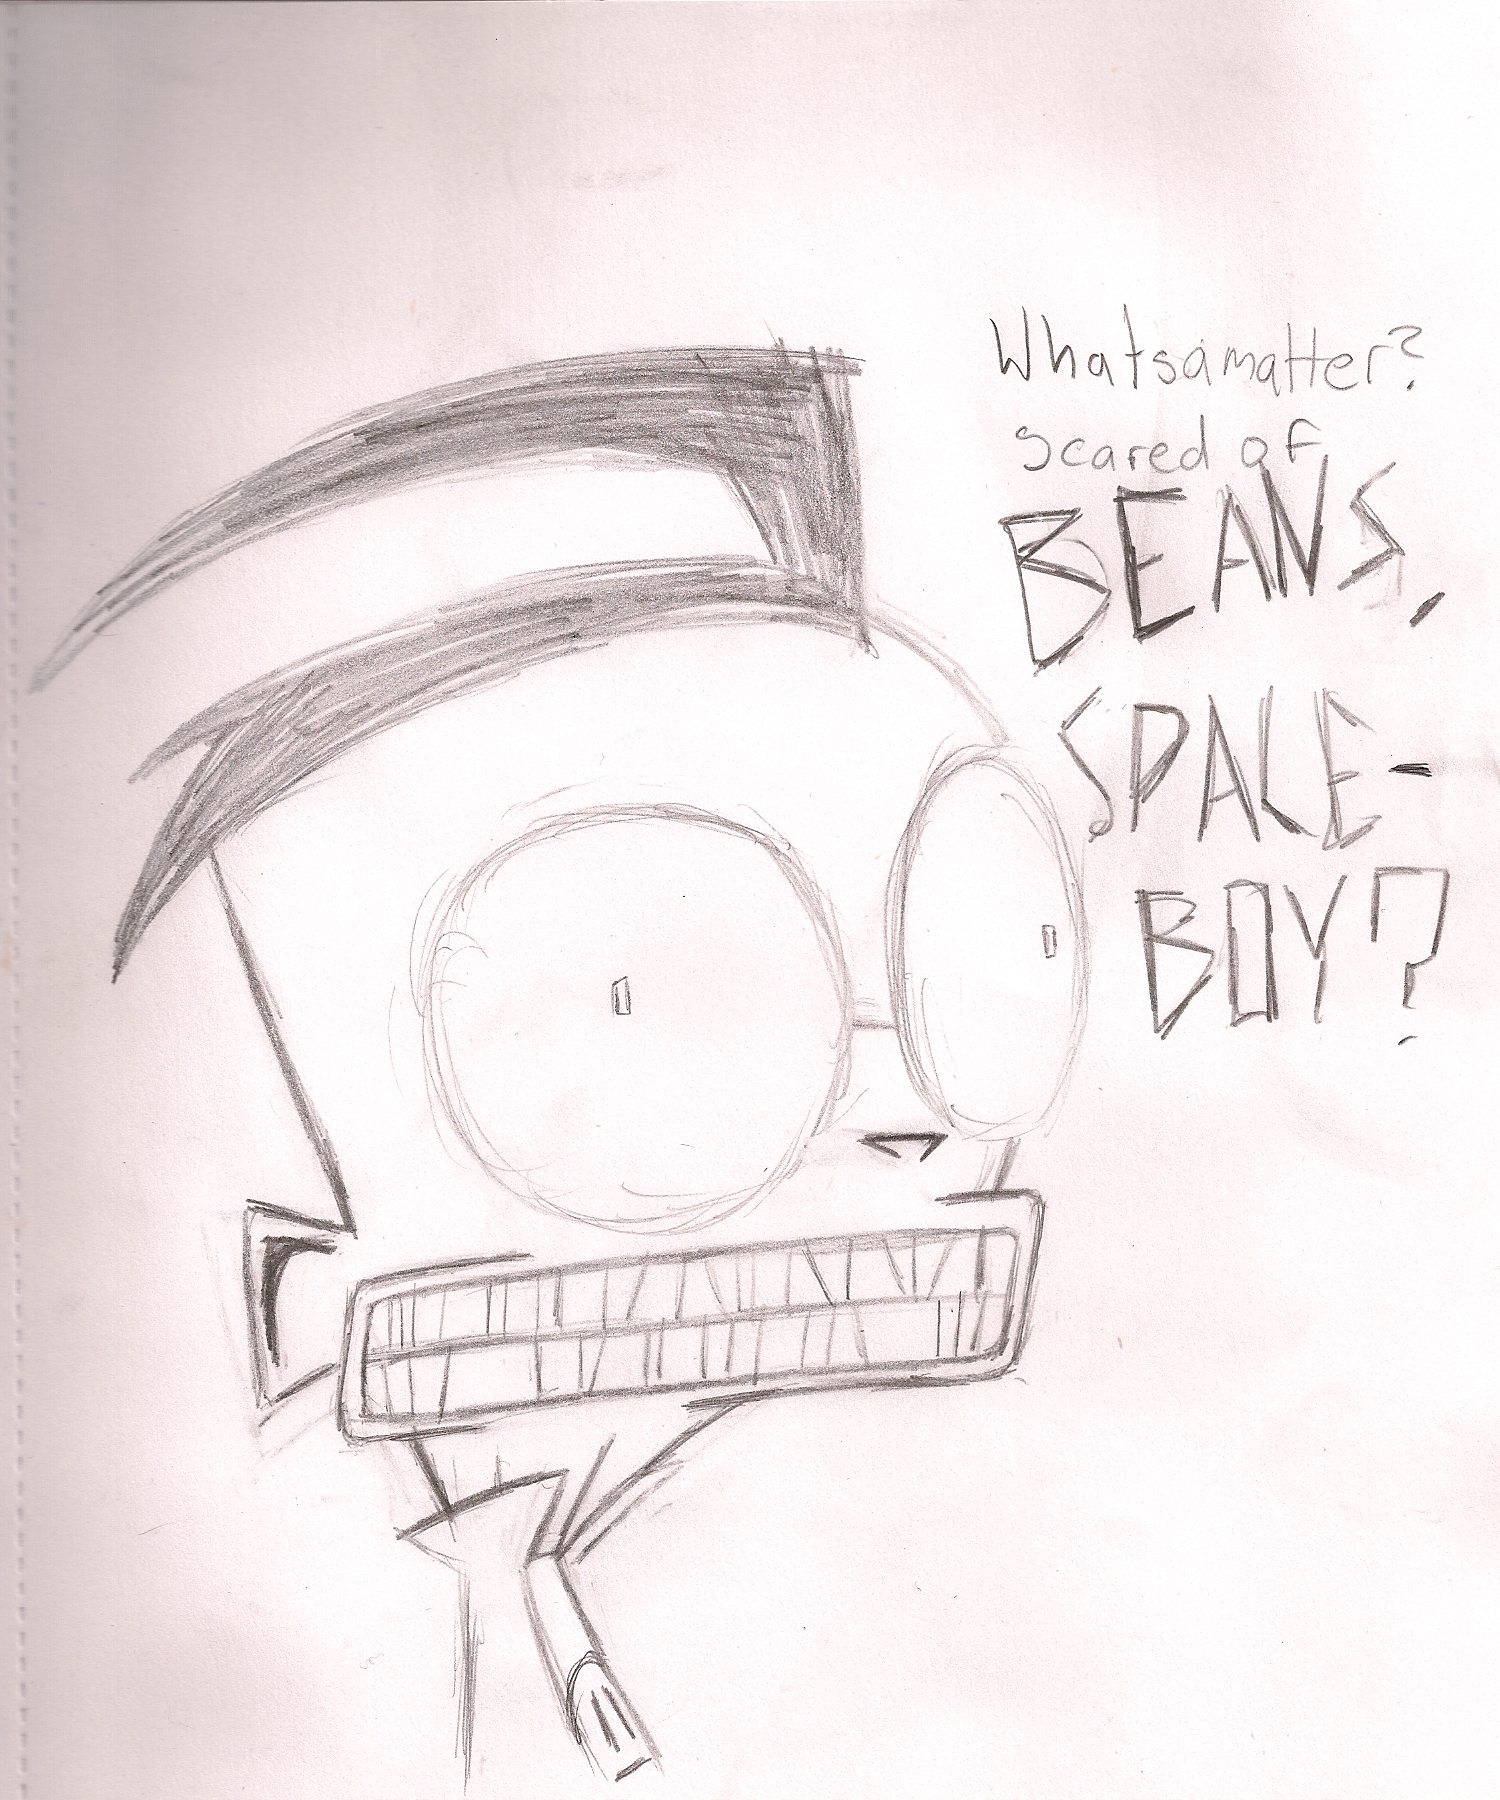 SCARED OF BEANS SPACEBOY!?